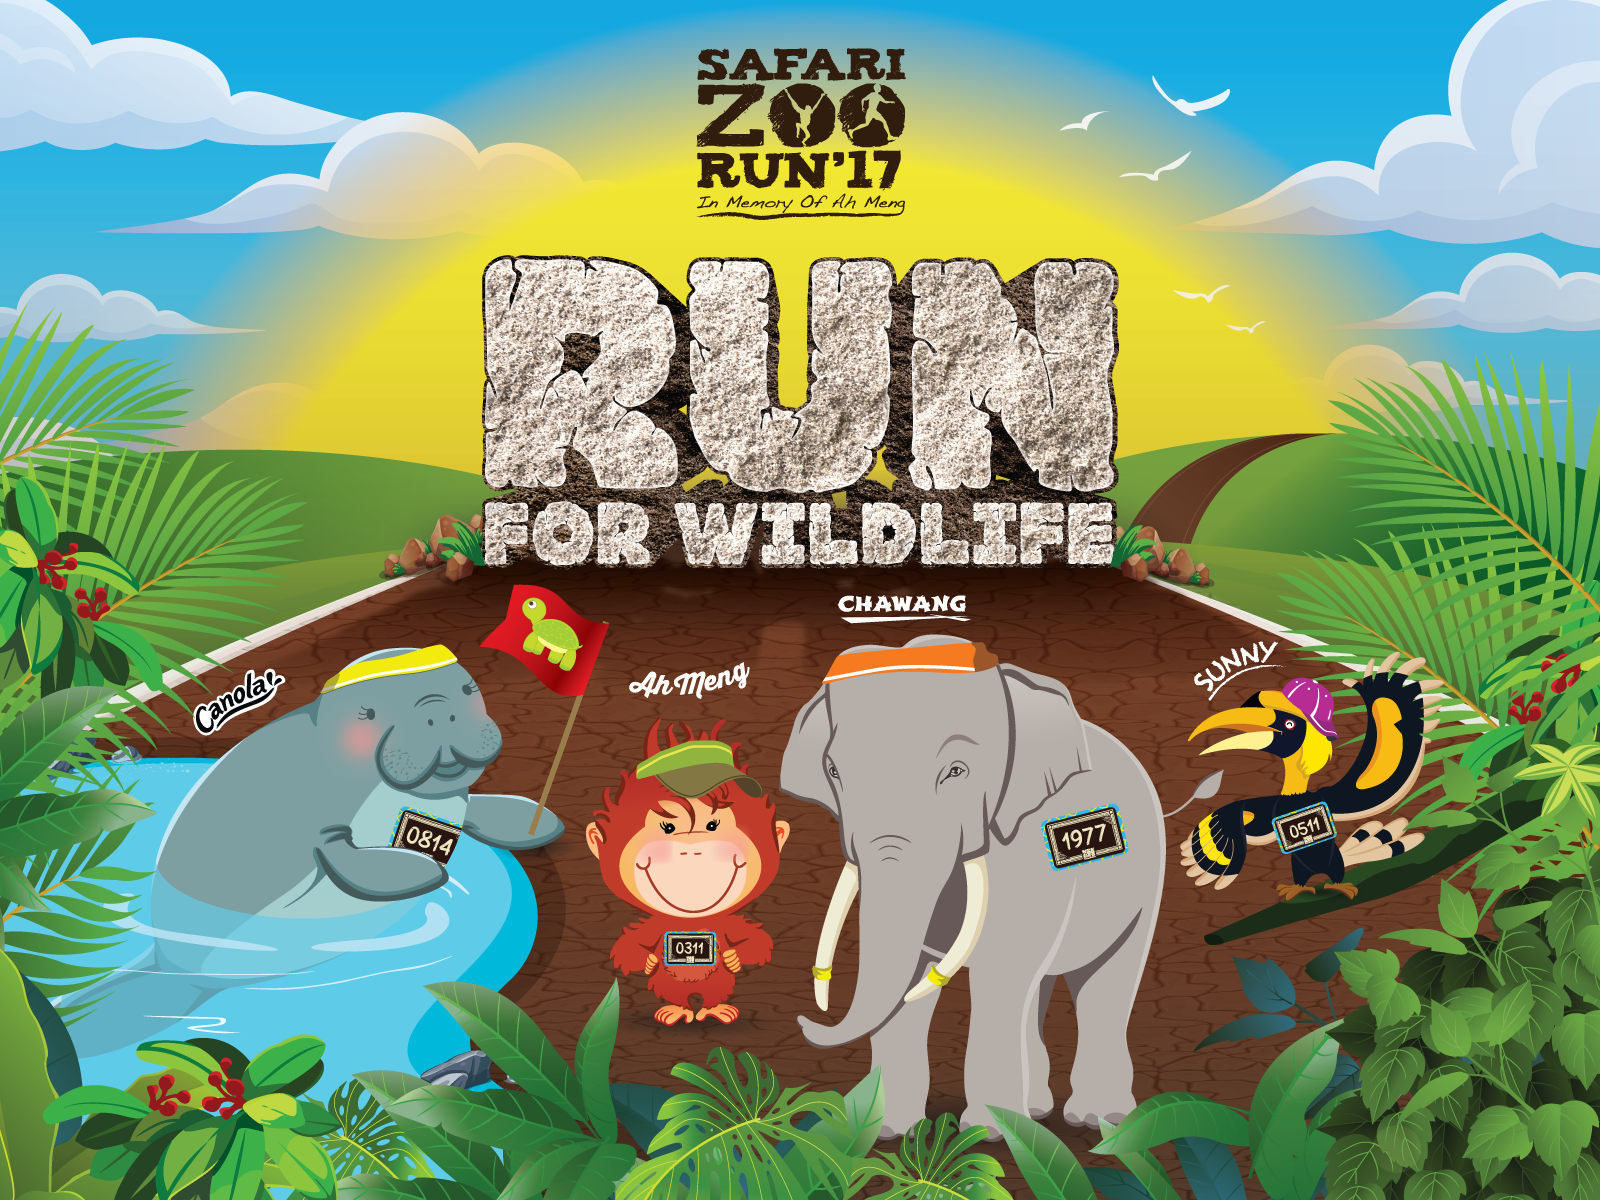 10% OFF Safari Zoo Run 2017 Registration Rates. Code: SZR2017BGPSAKUHARU10